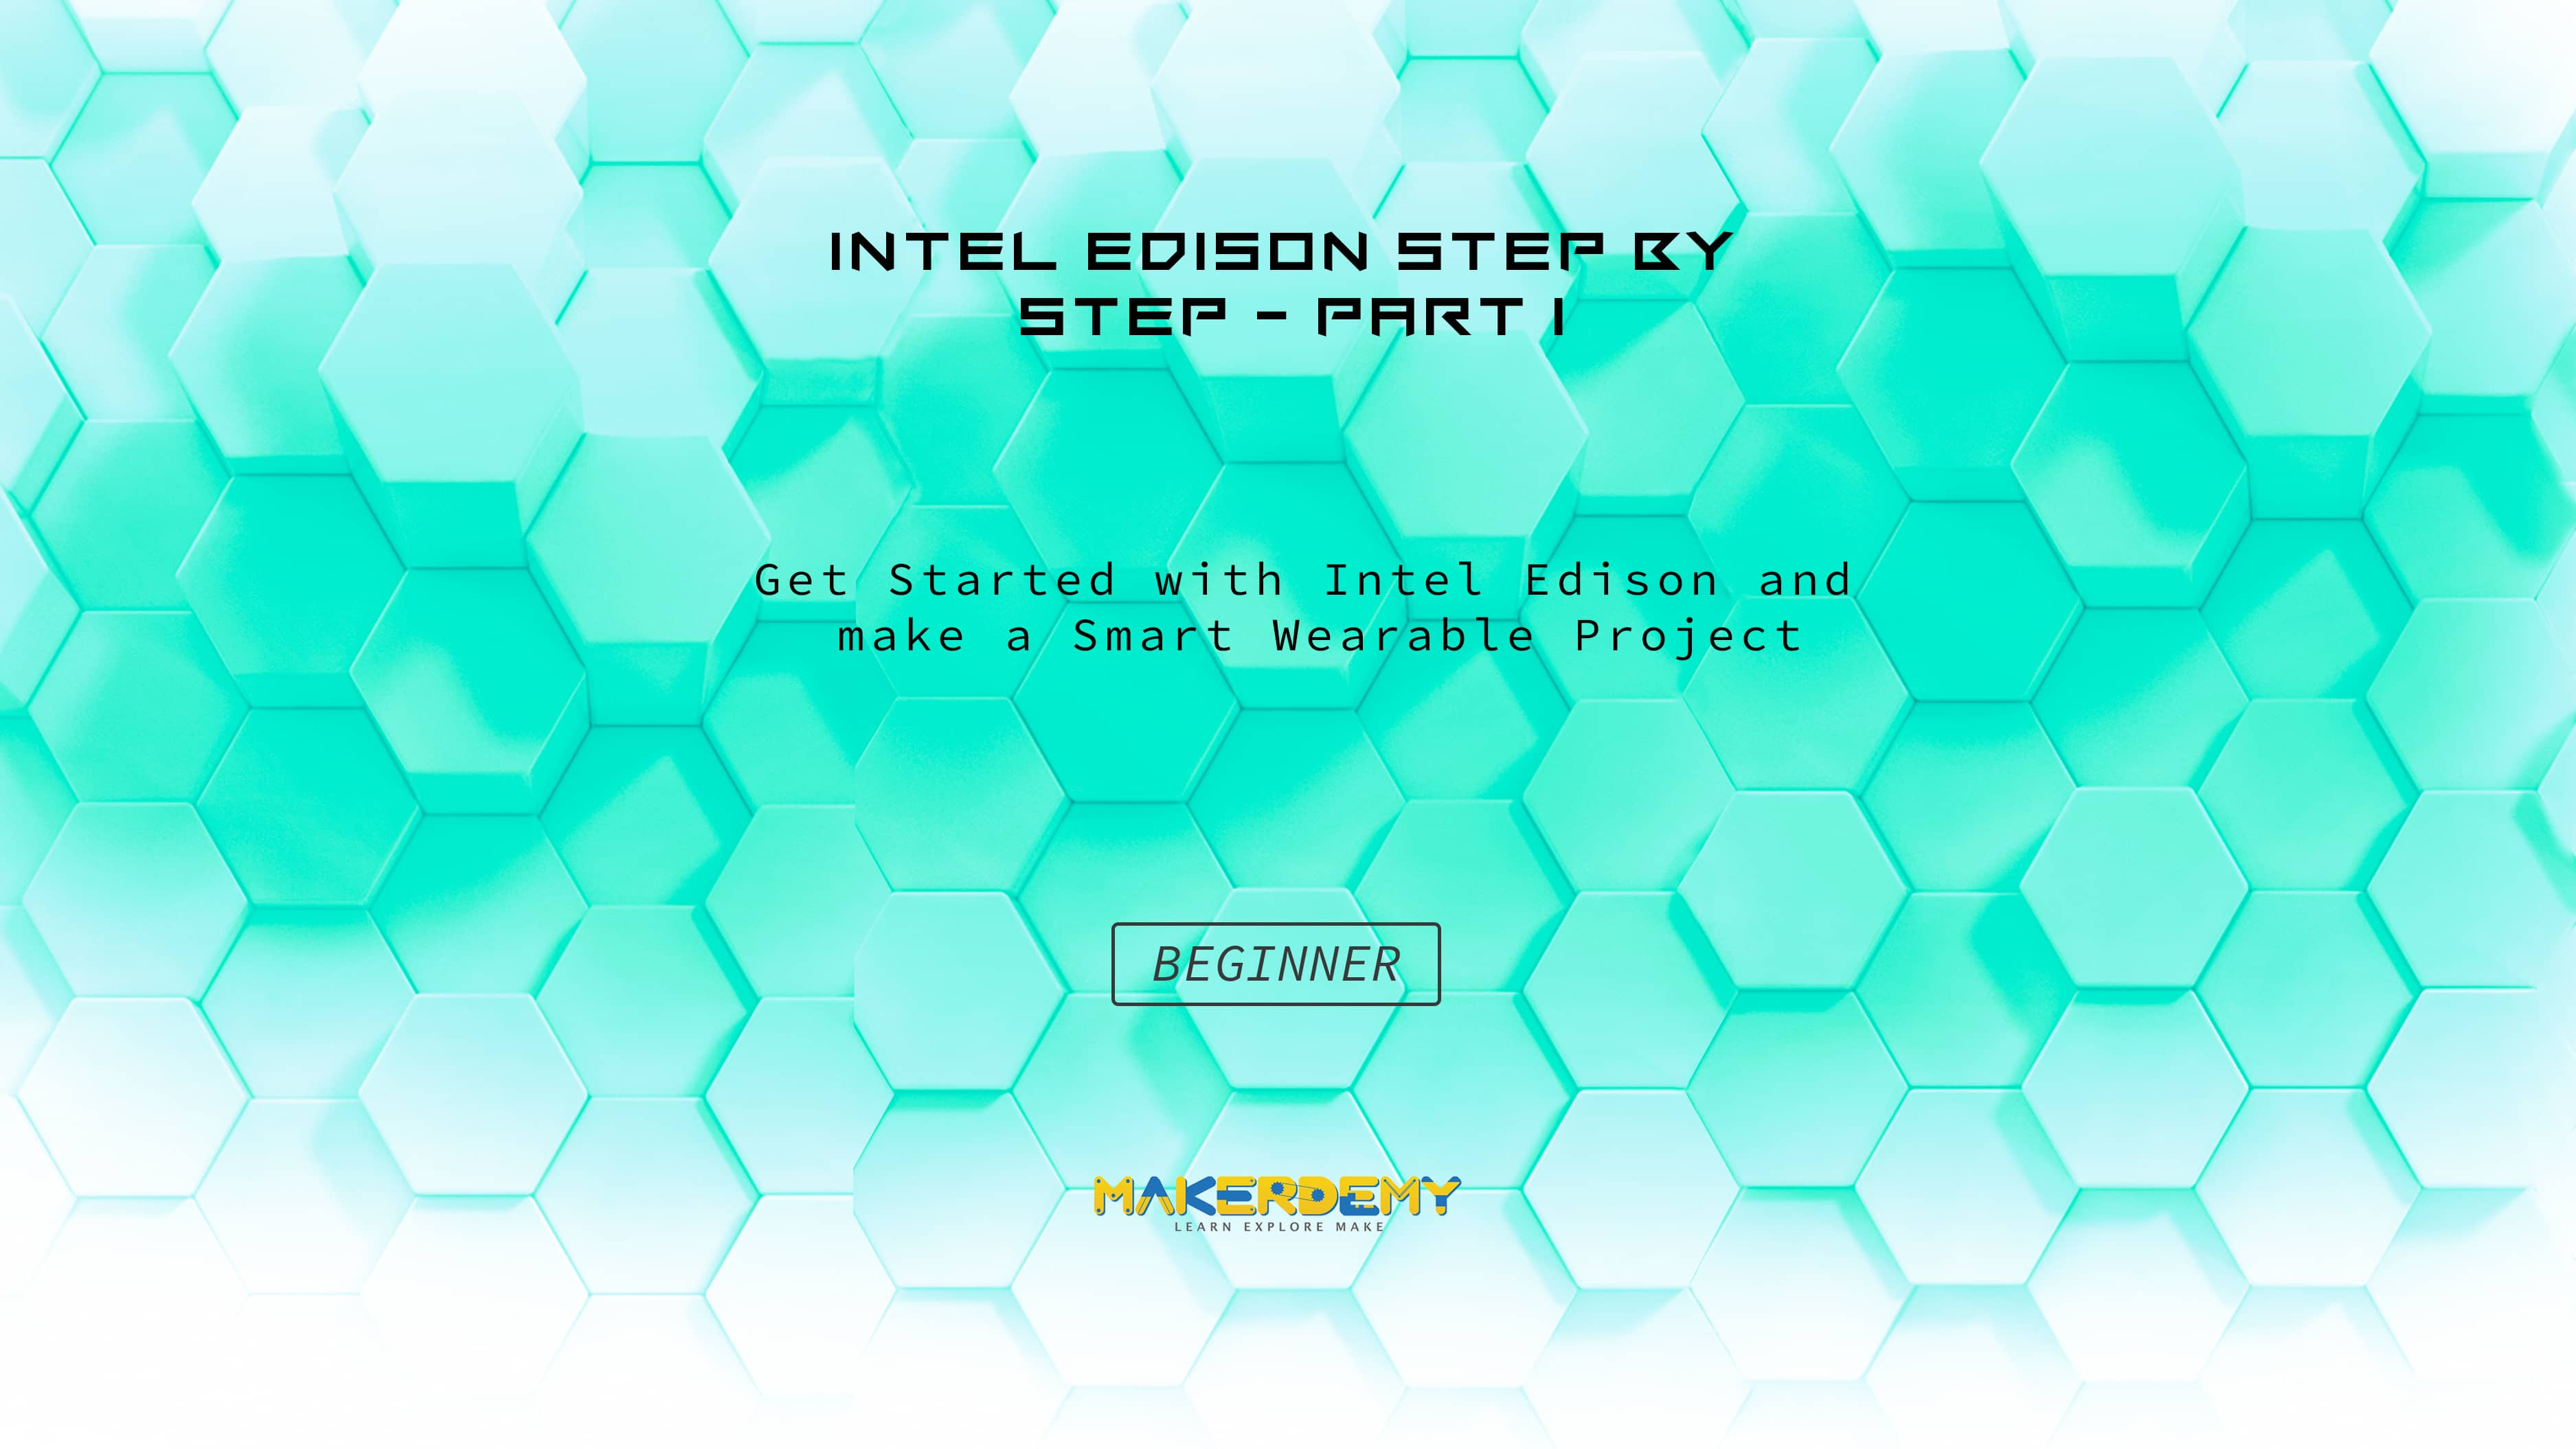 Intel Edison Step by Step - Part I